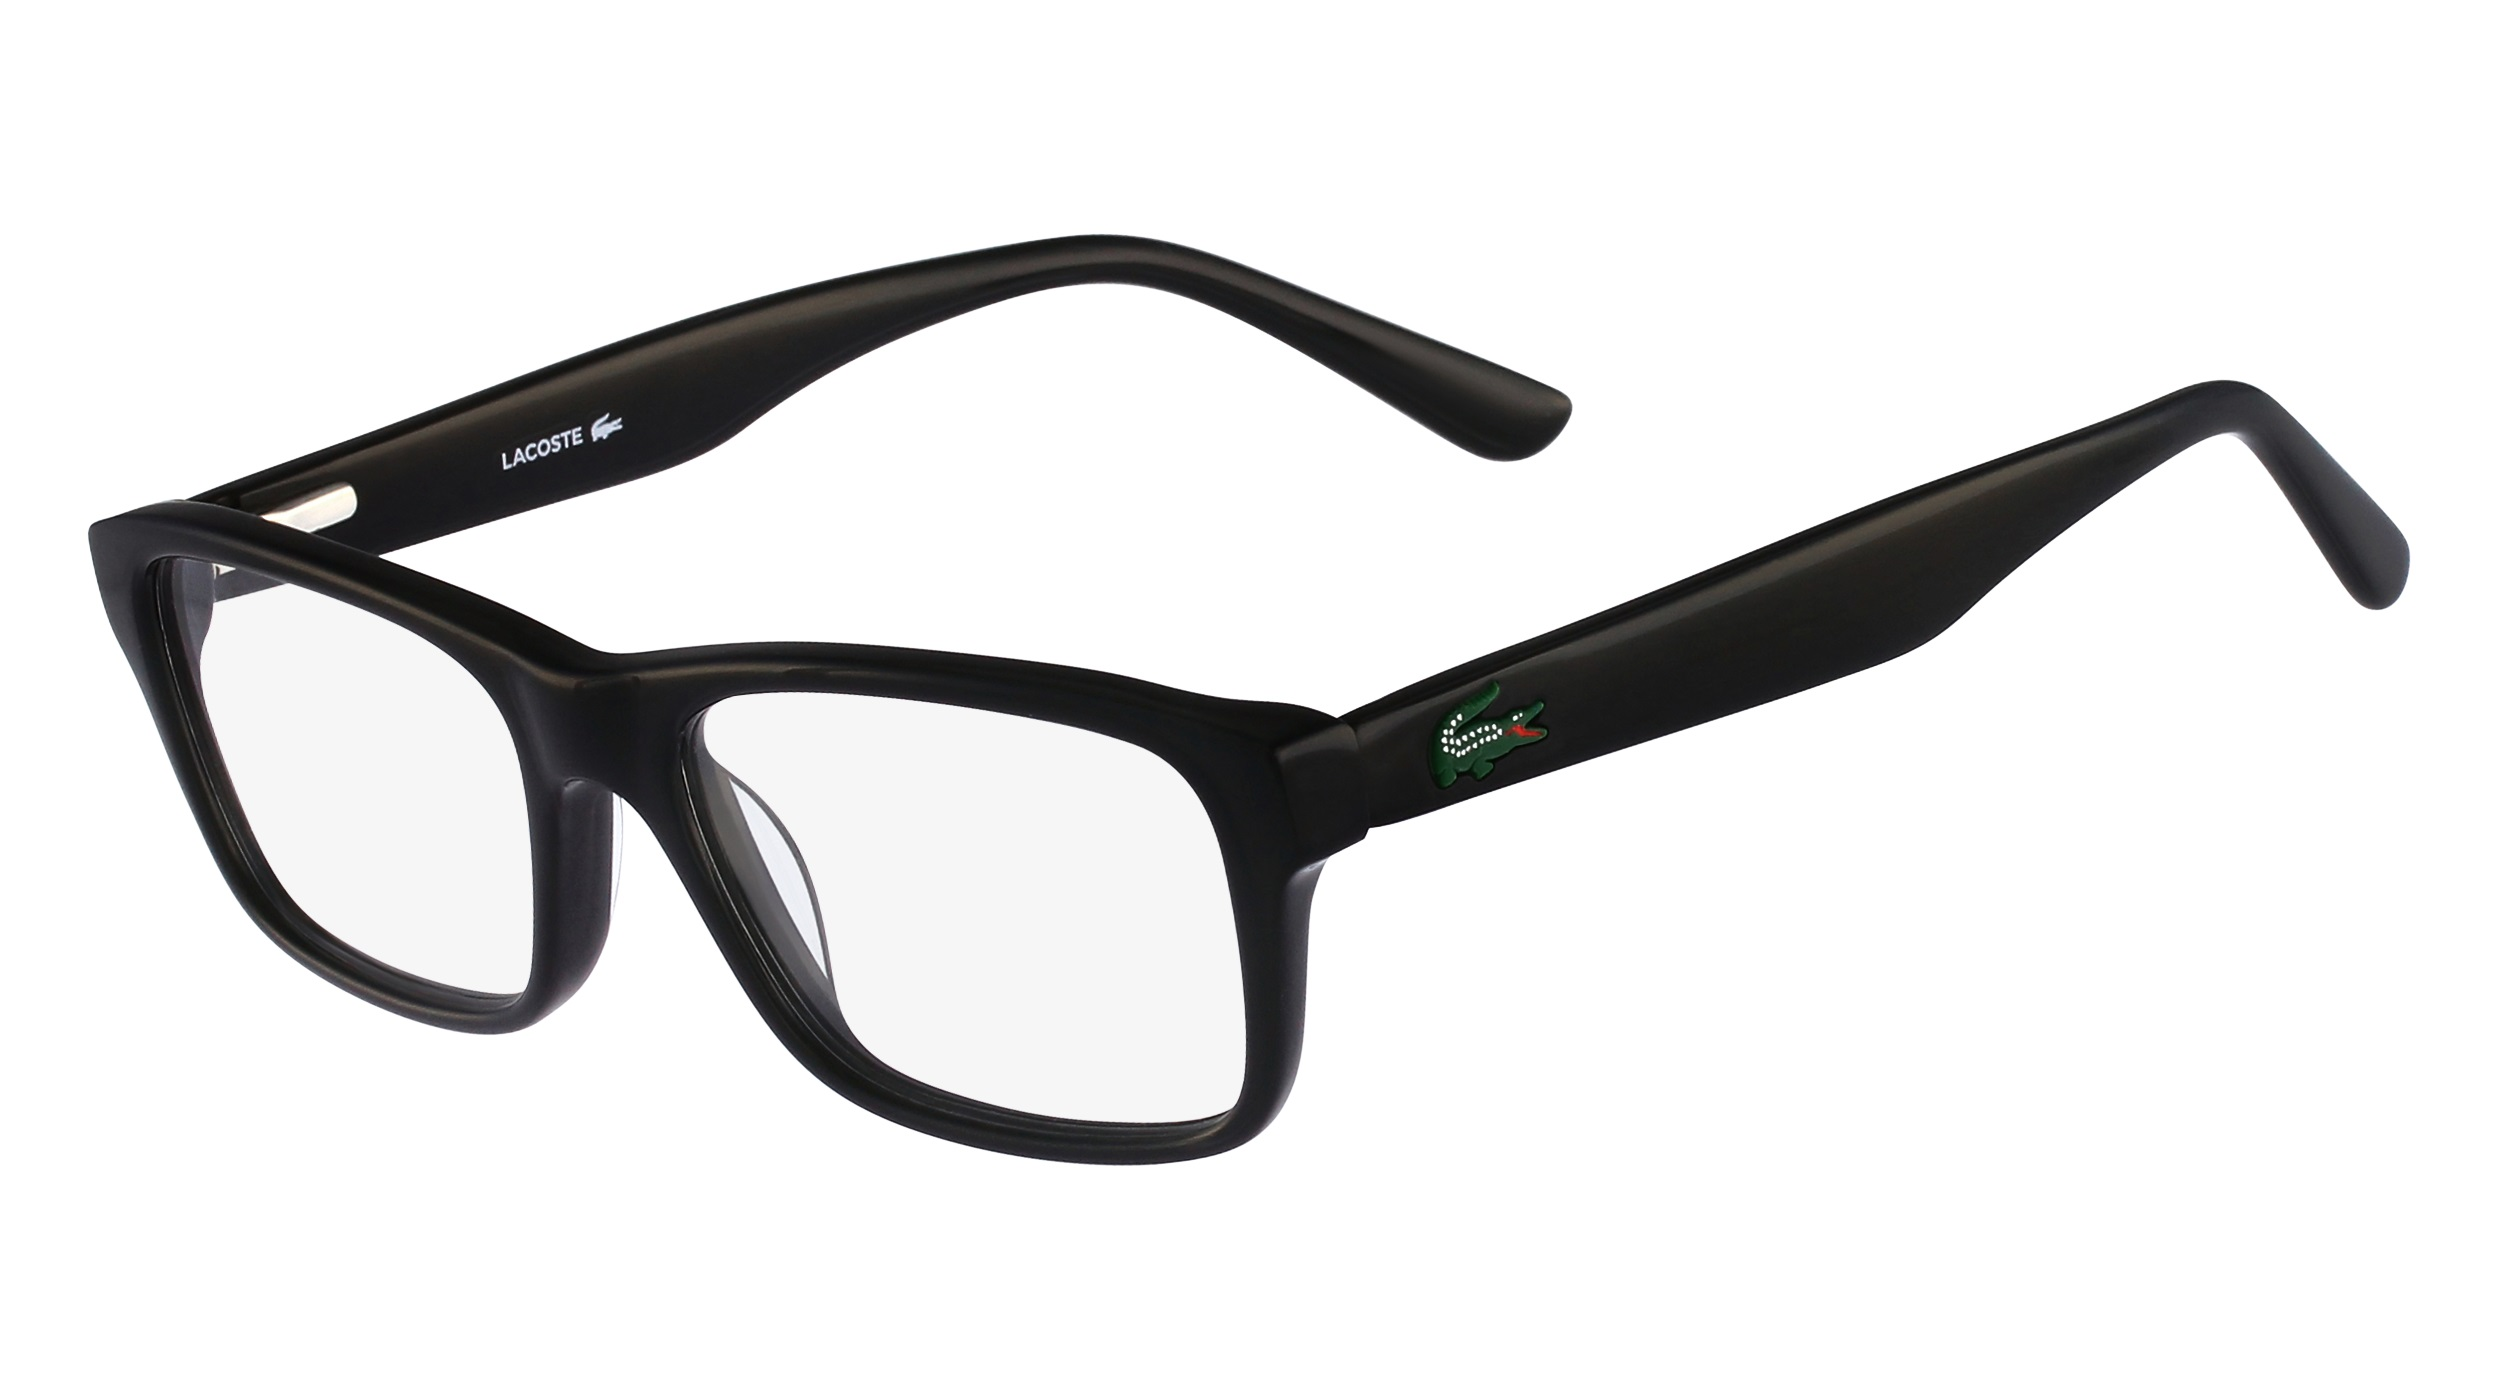 f256533ced3 Eyewear for Kids - Boy - Optiwow